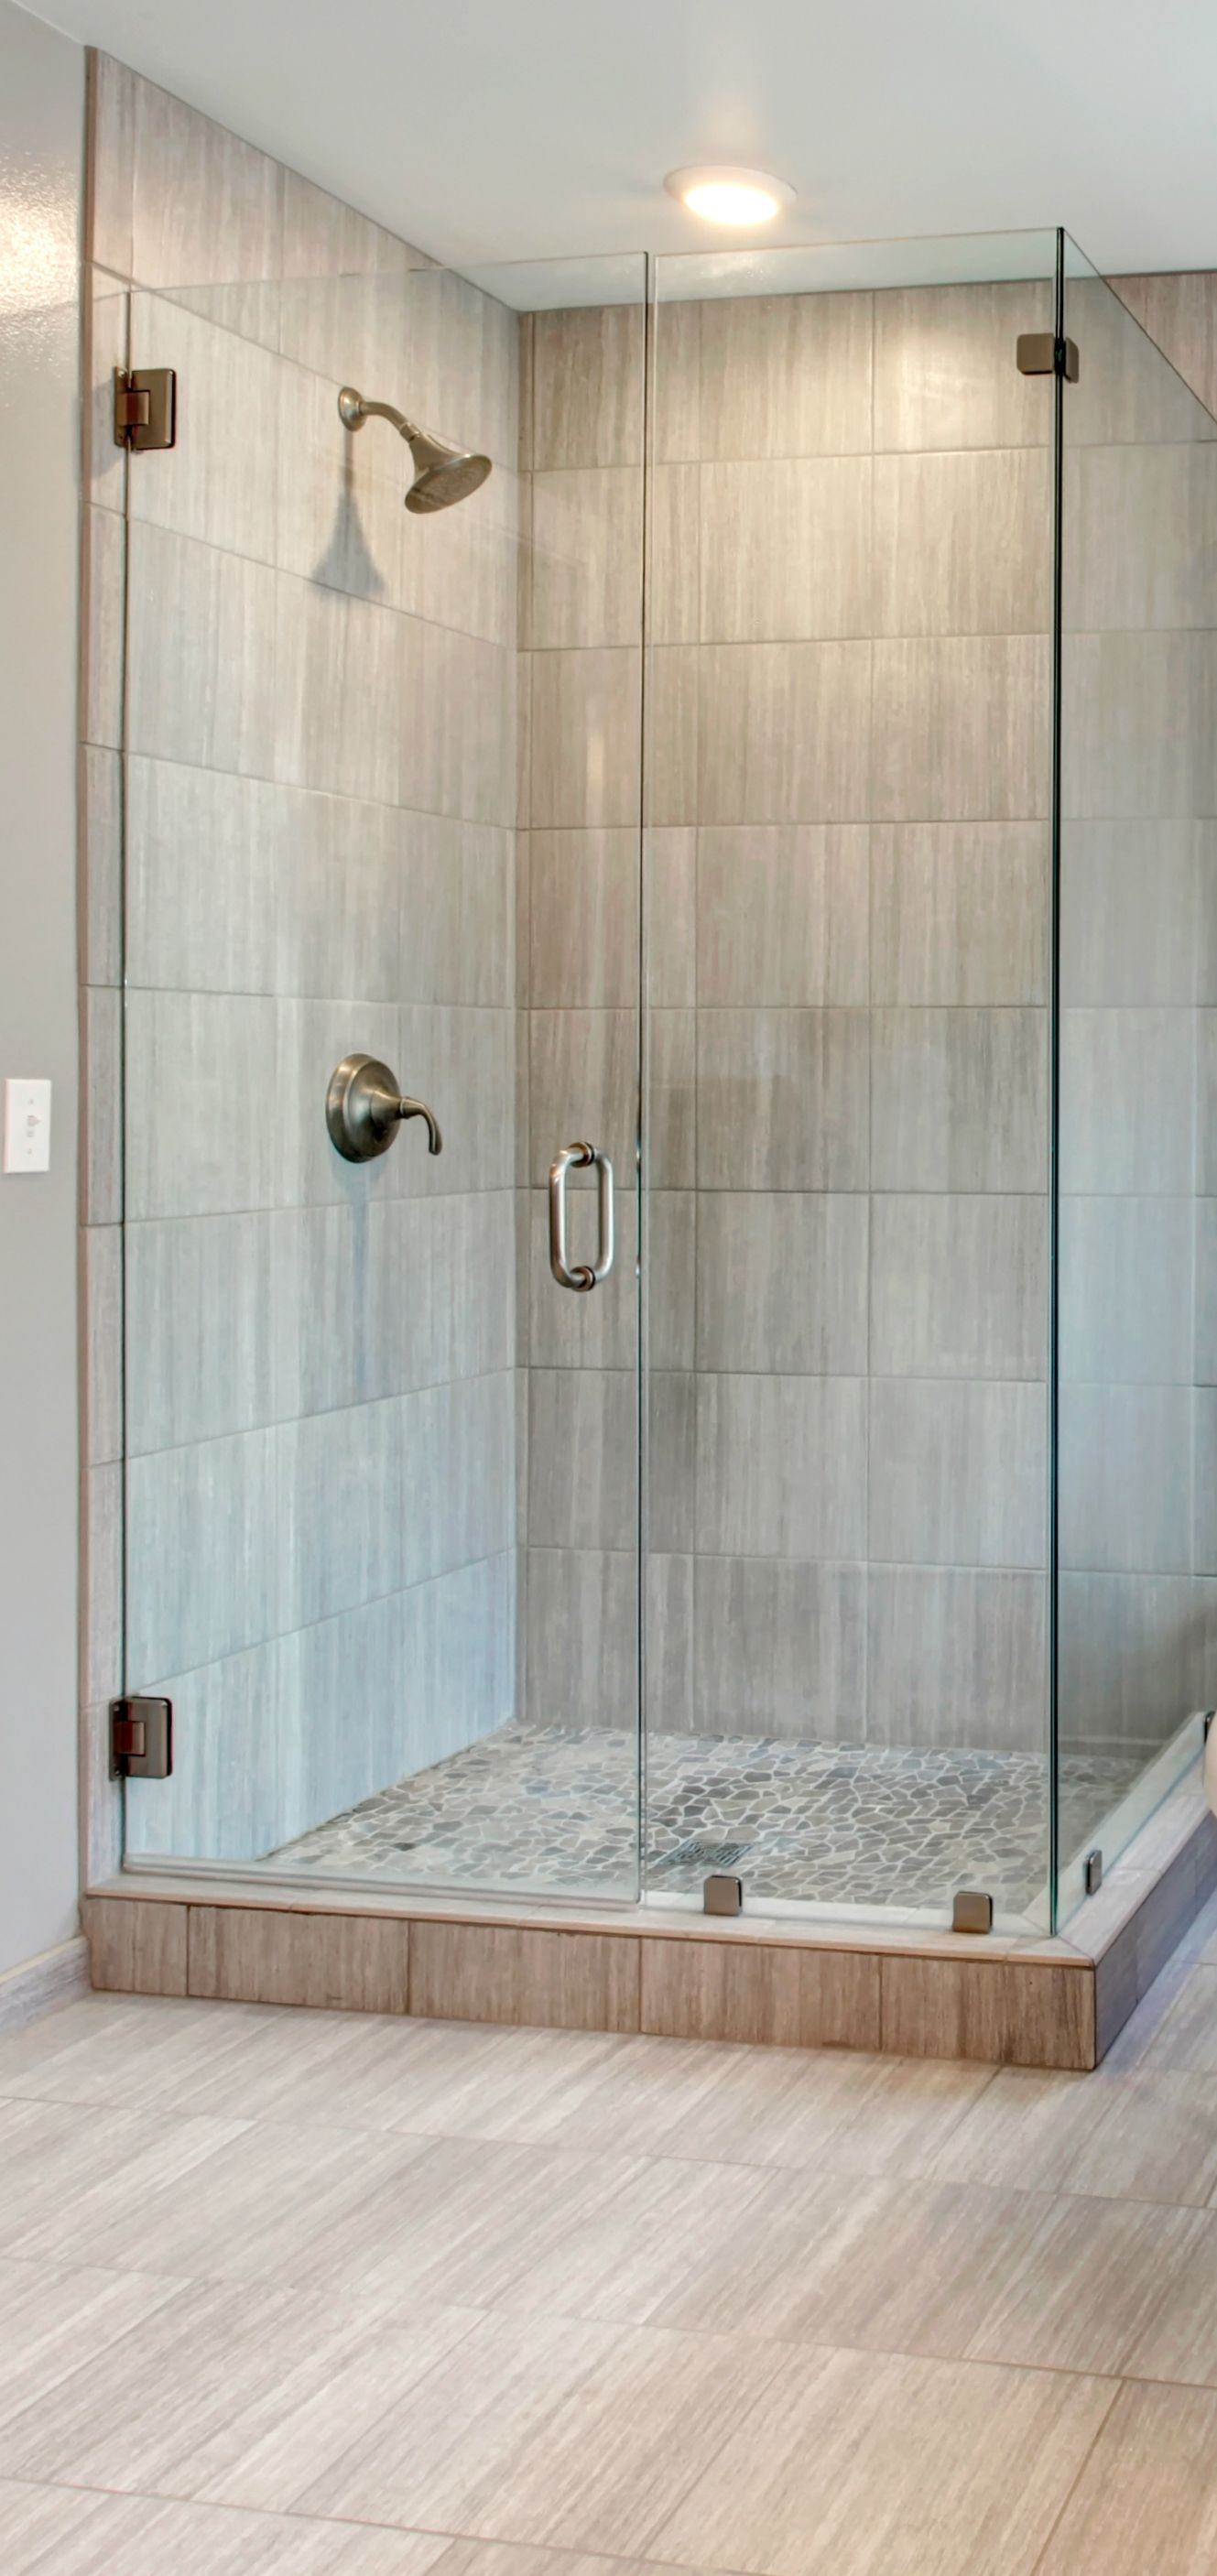 Small Bathroom Remodel Corner Shower showers corner walk in shower ideas for simple small bathroom with